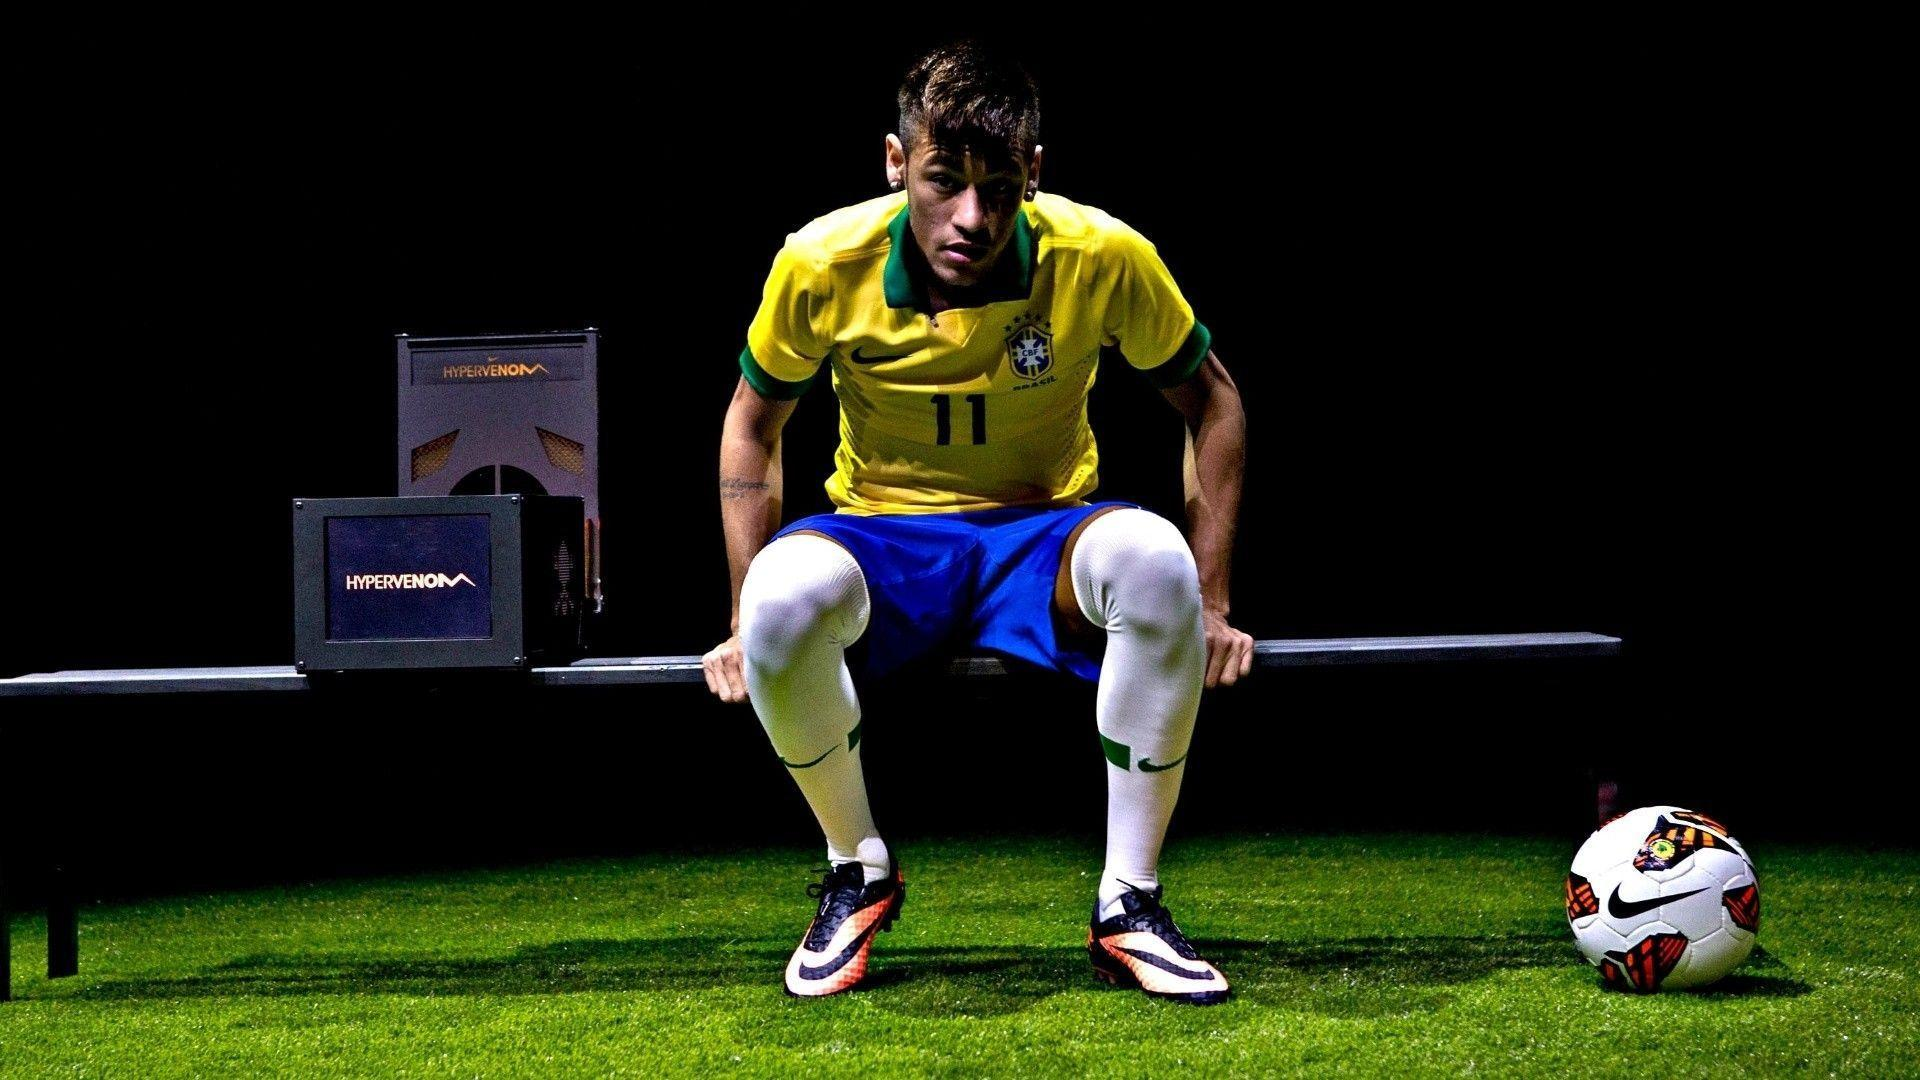 1747894 Neymar wallpapers HD free wallpapers backgrounds image FHD